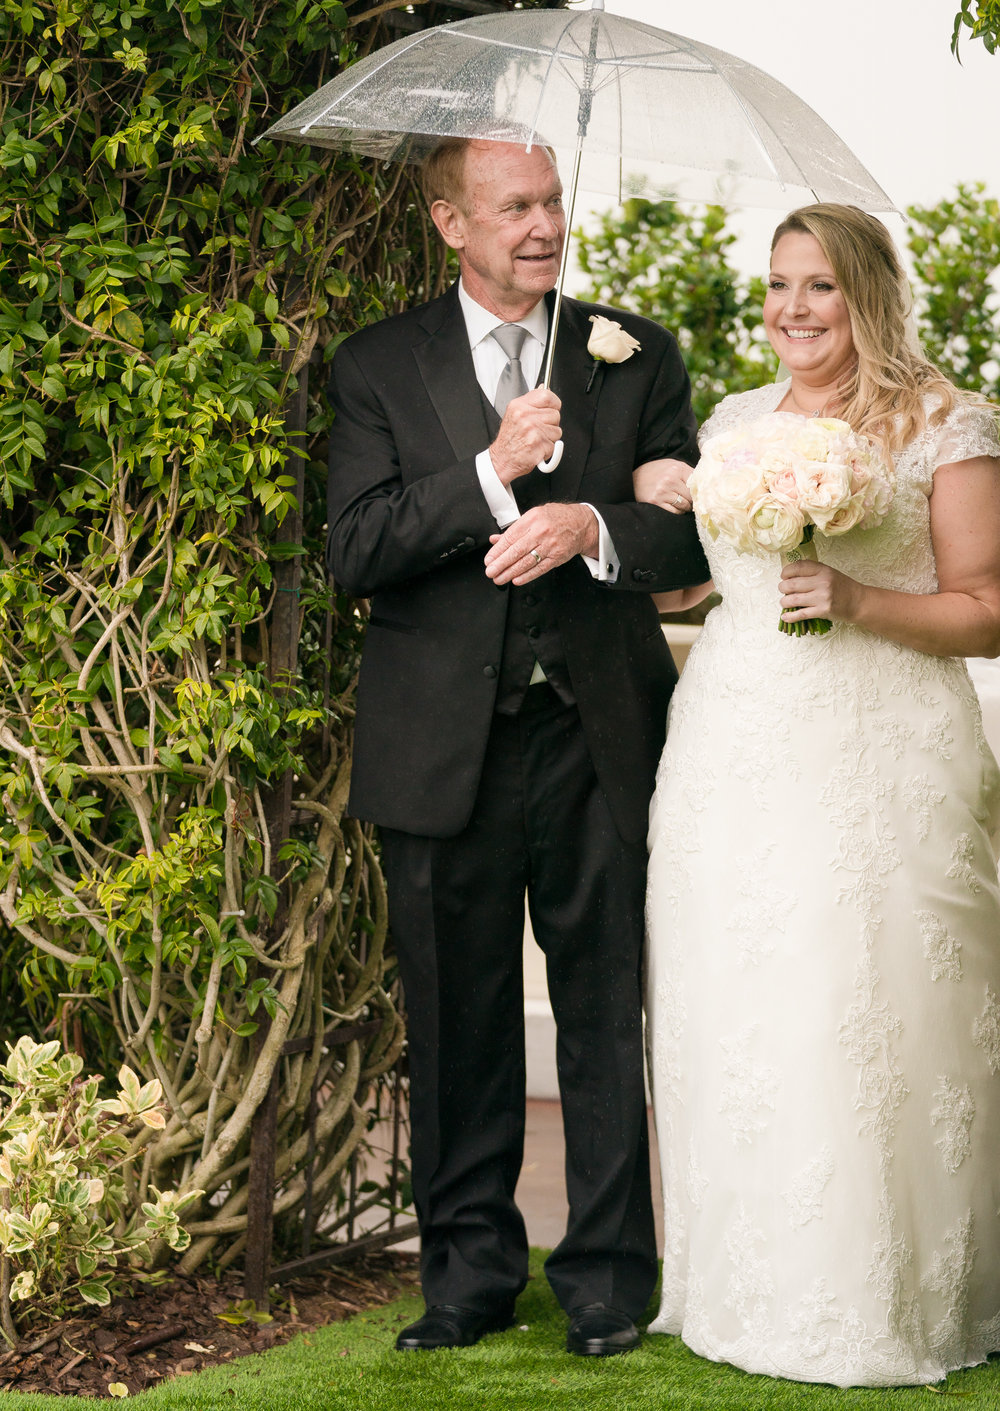 balboa_bay_resort_wedding_0079.JPG